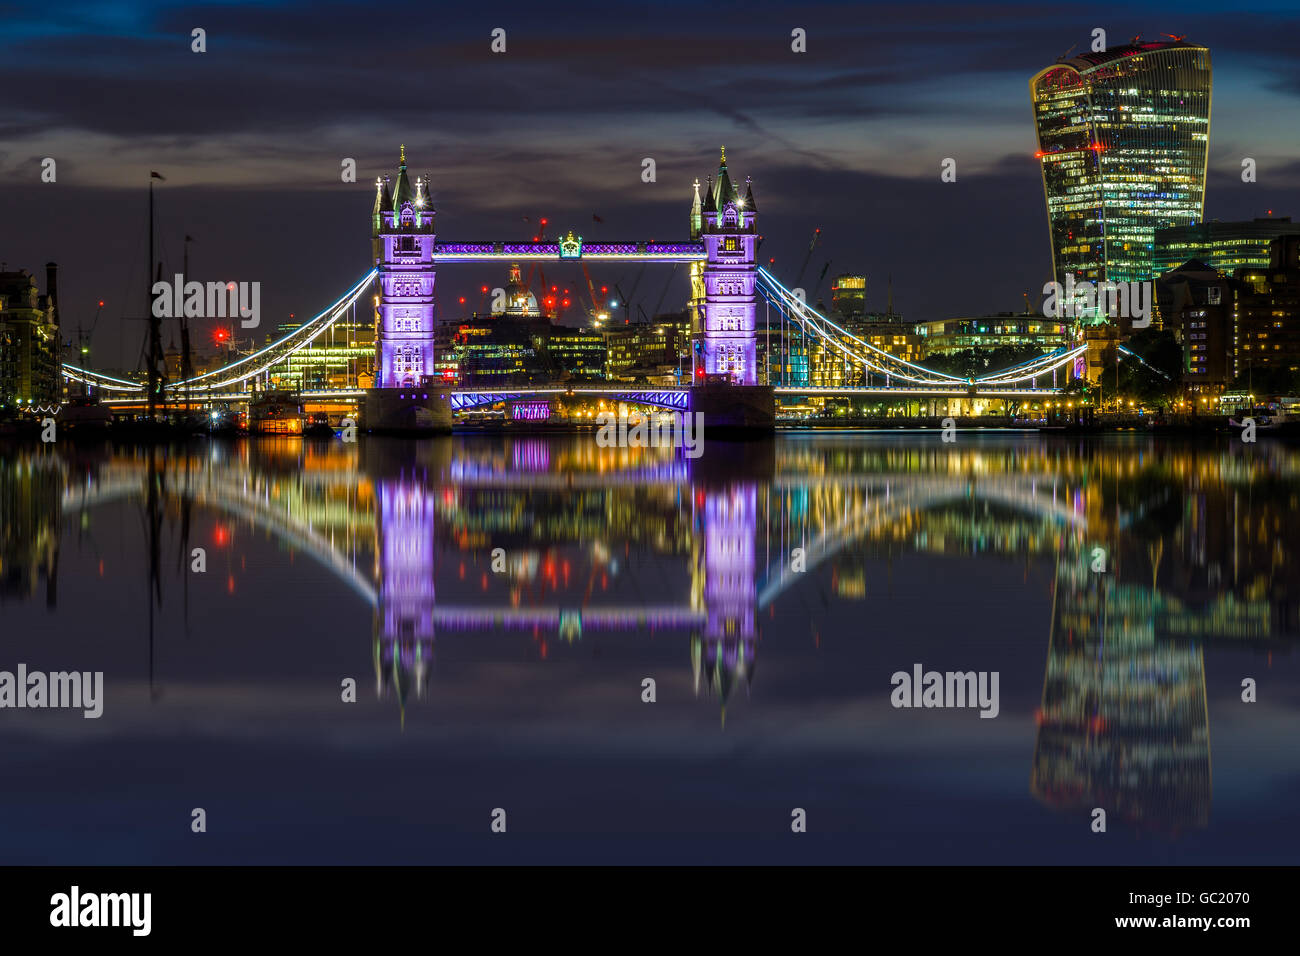 Illuminated London cityscape with Tower Bridge and Fenchurch building at sunset - Stock Image